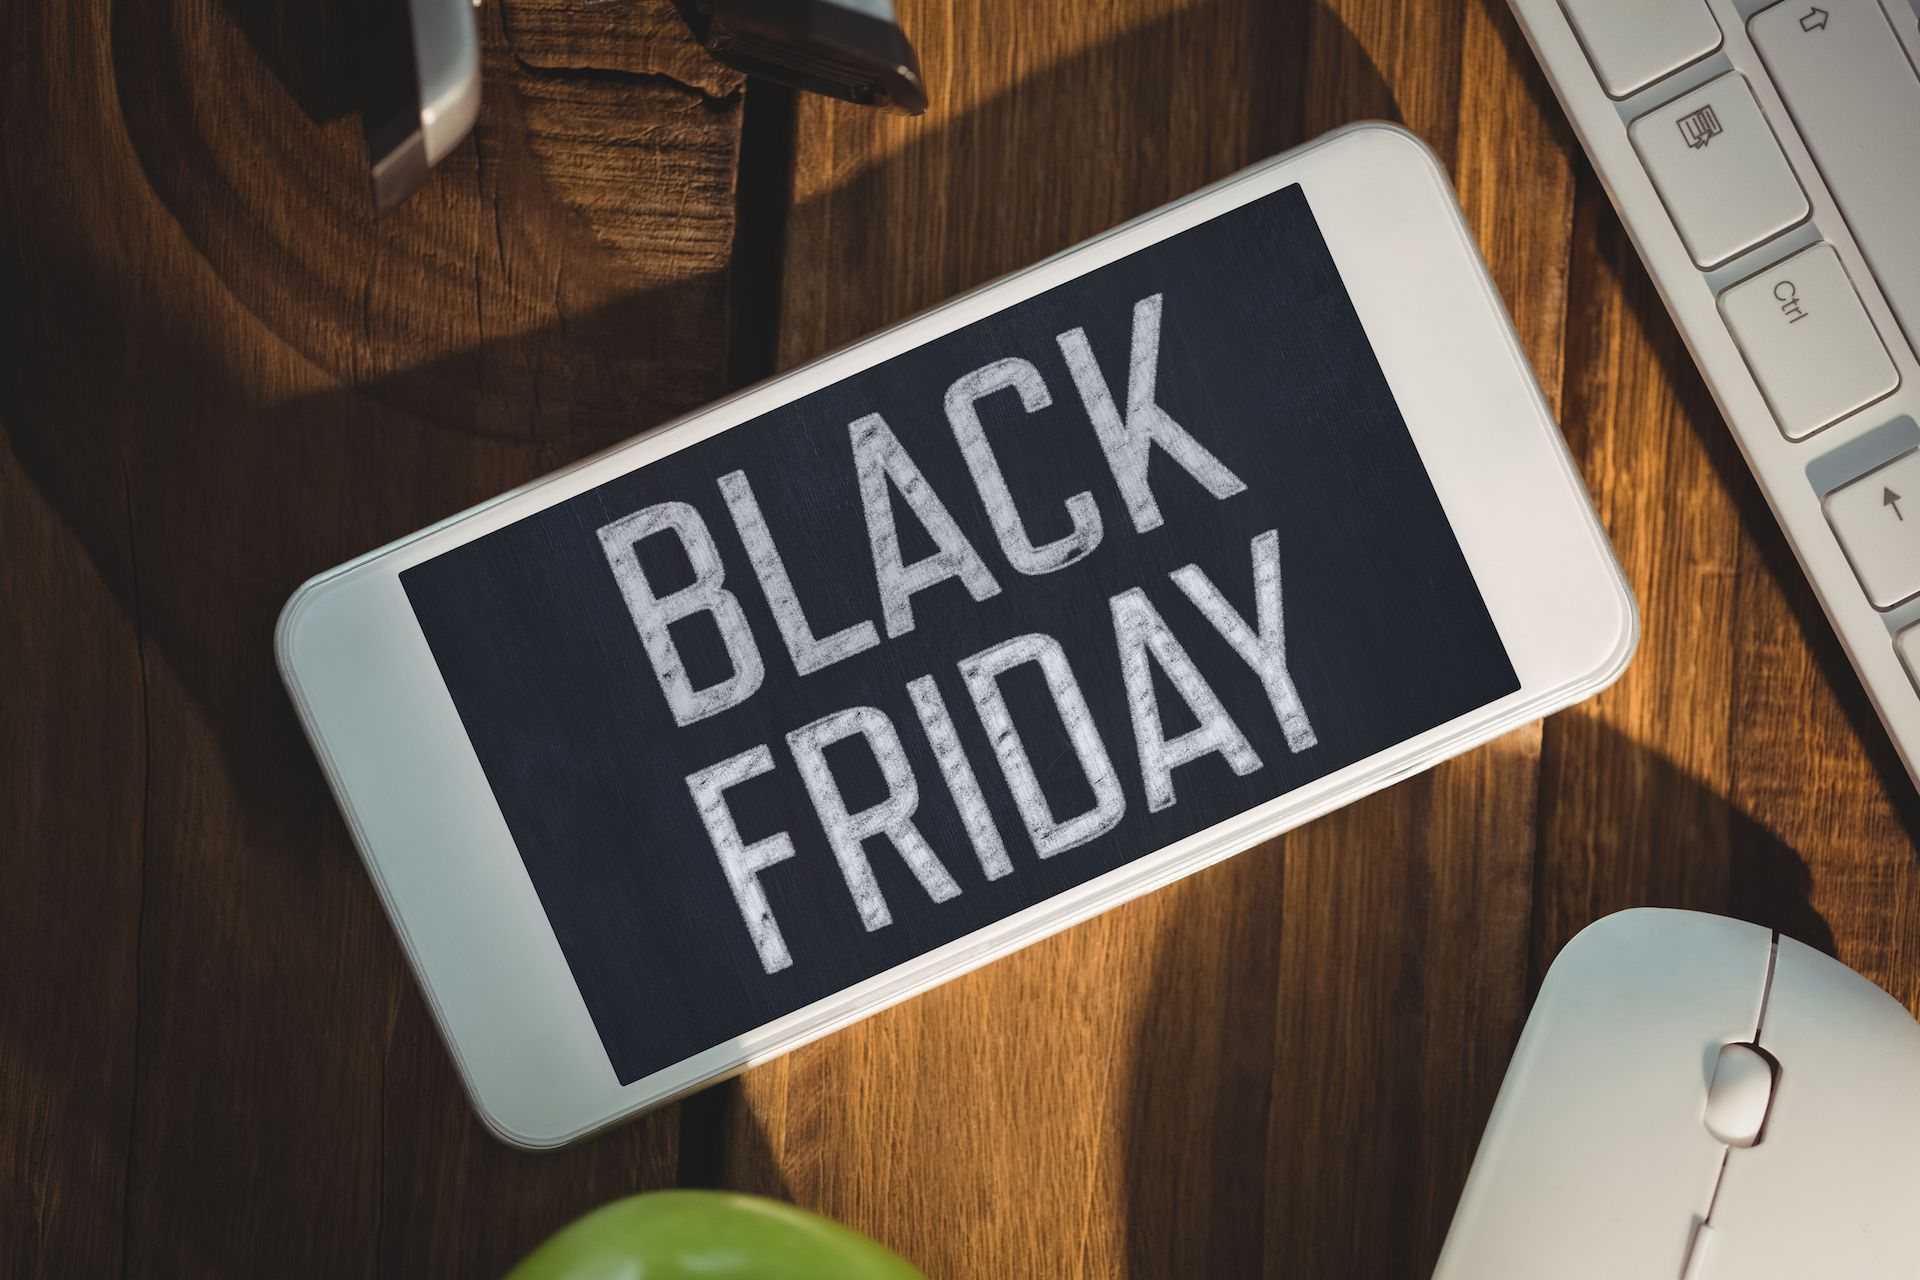 Is Your Company's Website Ready for Black Friday? [Infographic]